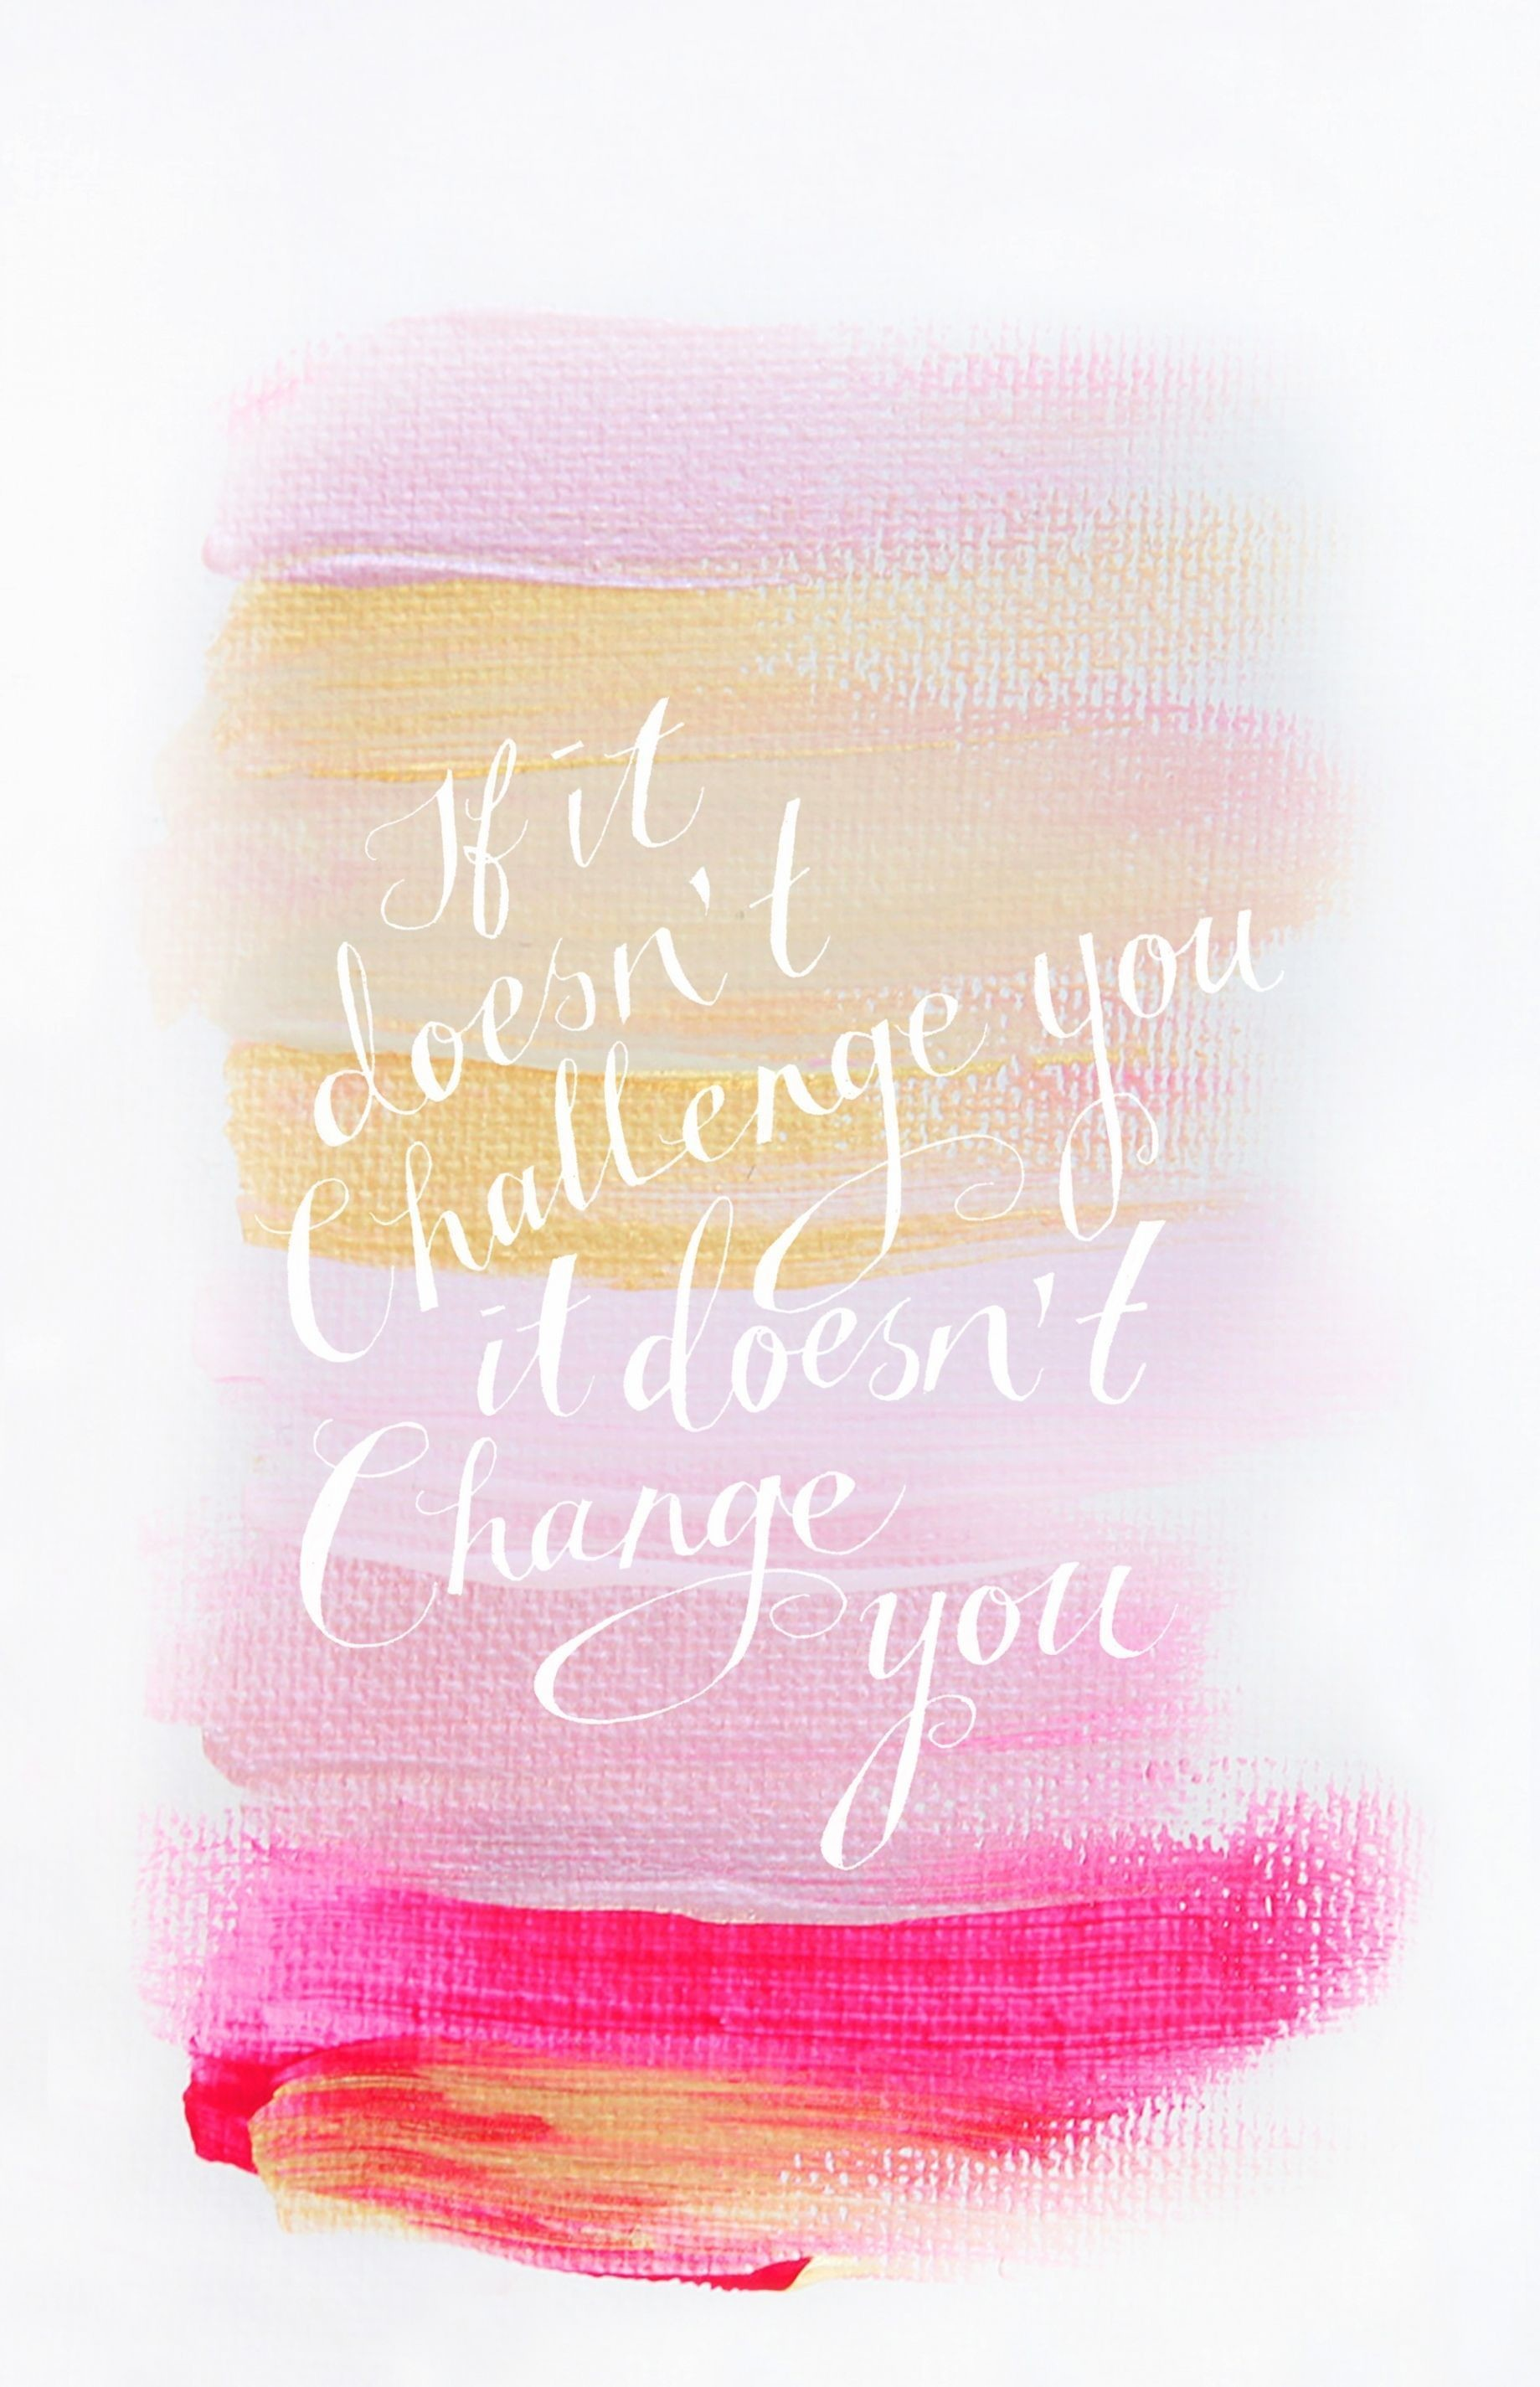 1839x2850, Wallpaper Floral Tumblr With Quotes Awesome - Beautiful Quotes Wallpaper Iphone - HD Wallpaper